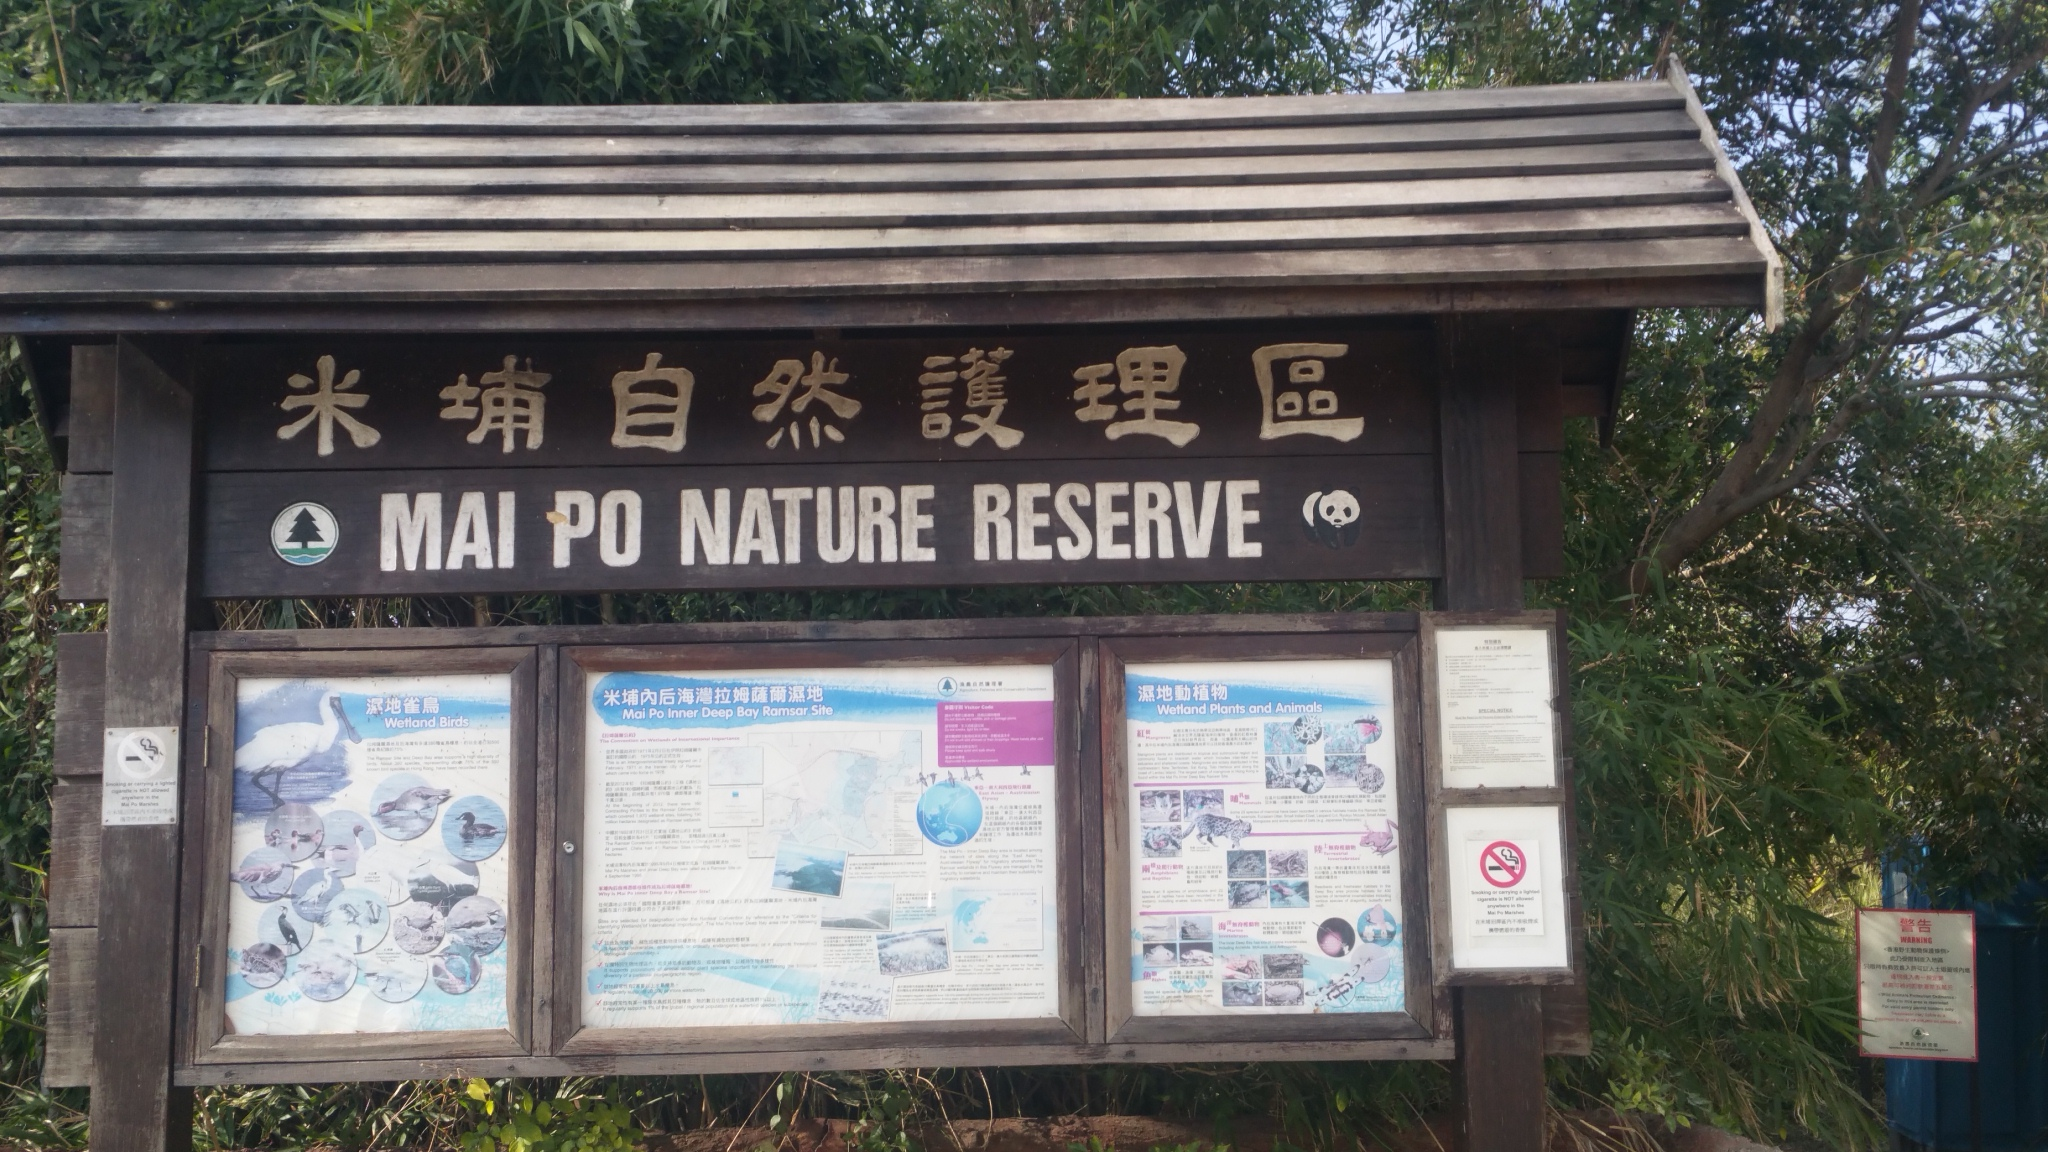 Mai Po Nature Reserve board